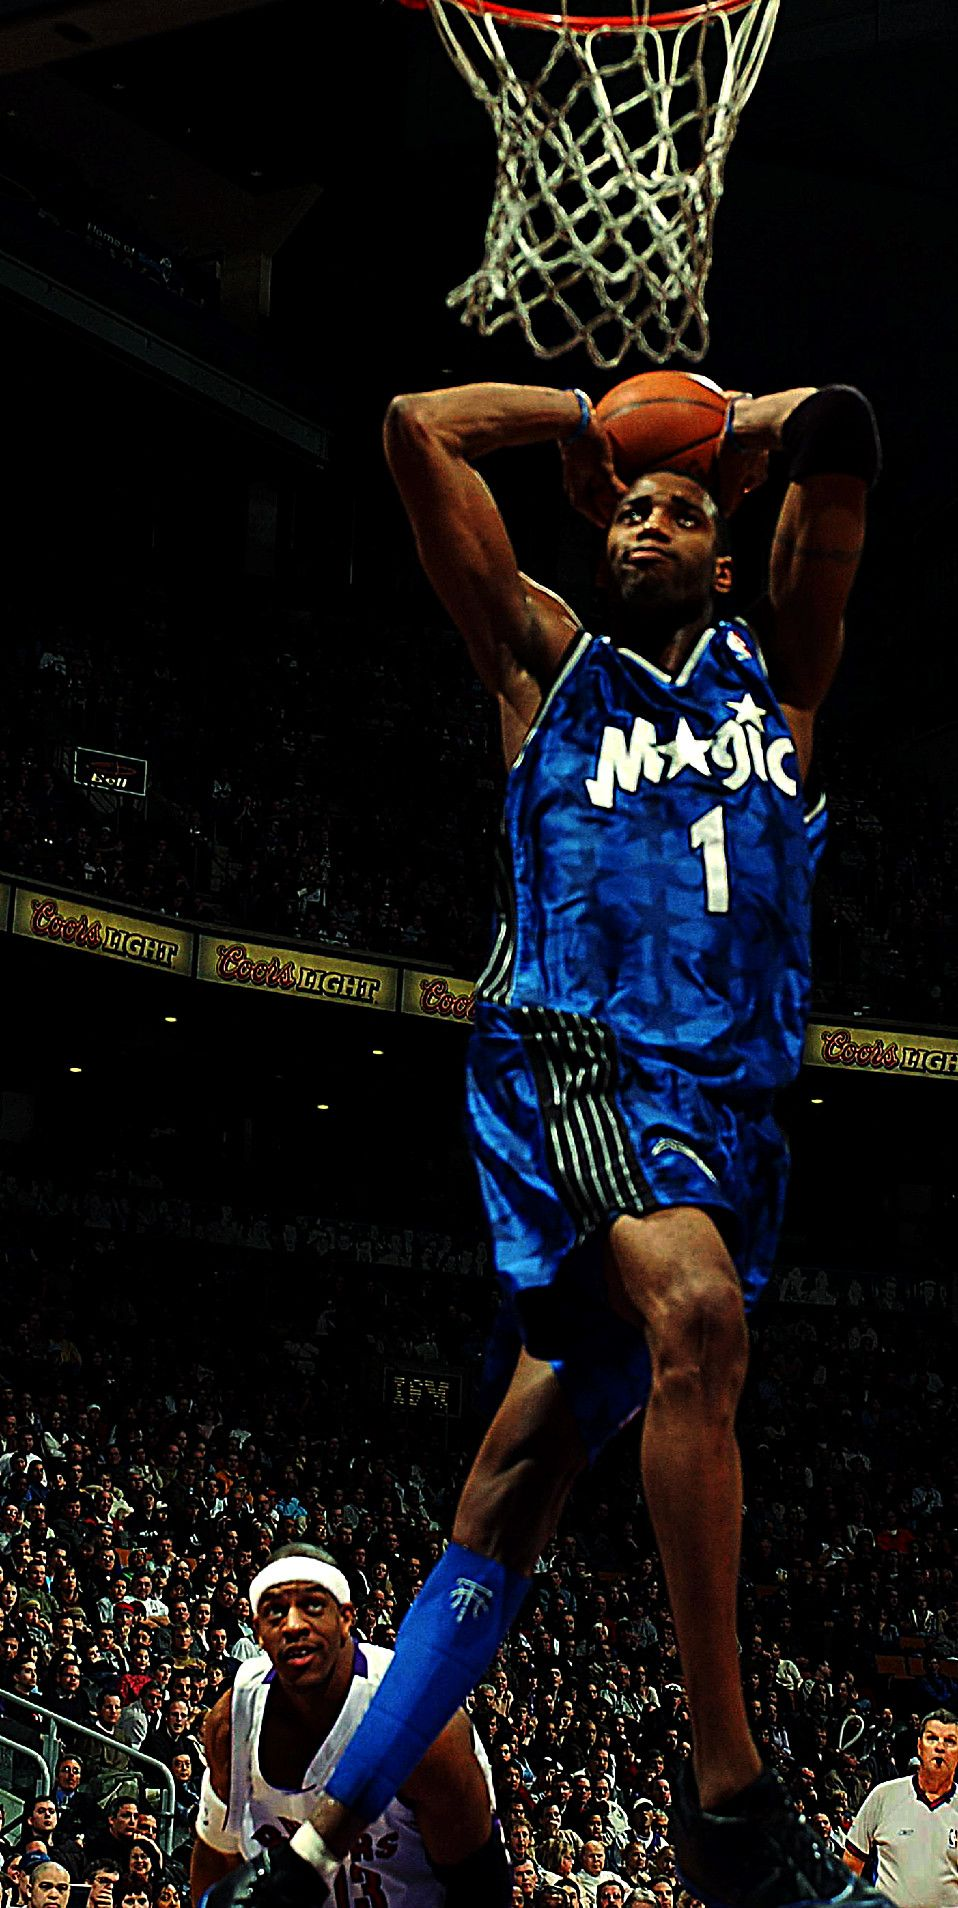 T Mac Chance S Big Brother Tracy Mcgrady I Love Basketball Basketball Photos